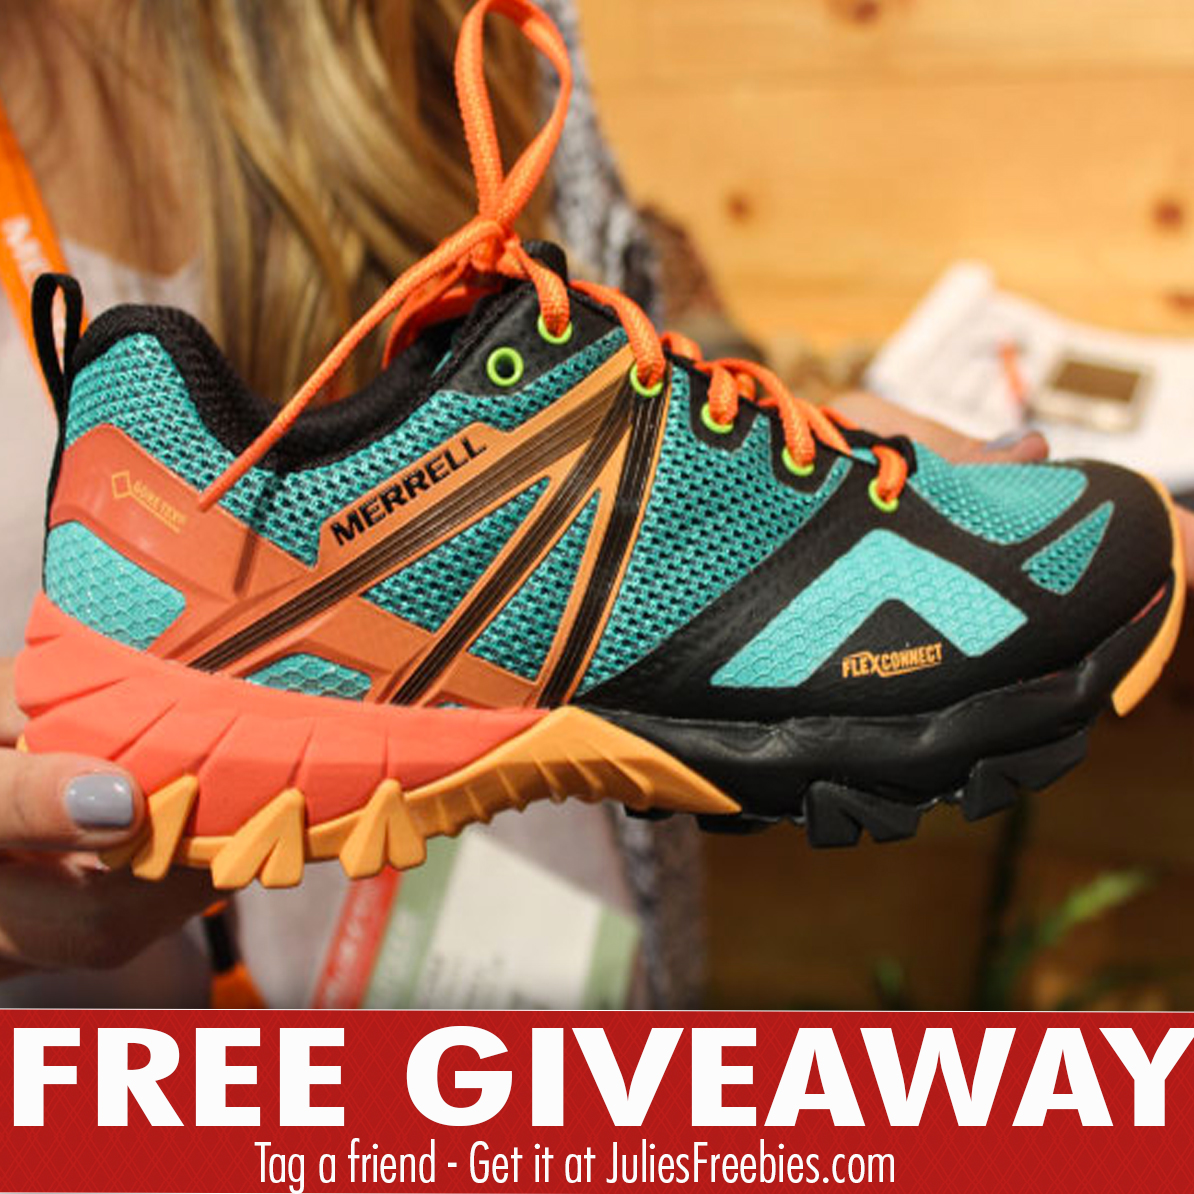 Here Is An Offer Where You Can Enter The Merrell Mqm Shoe Giveaway From